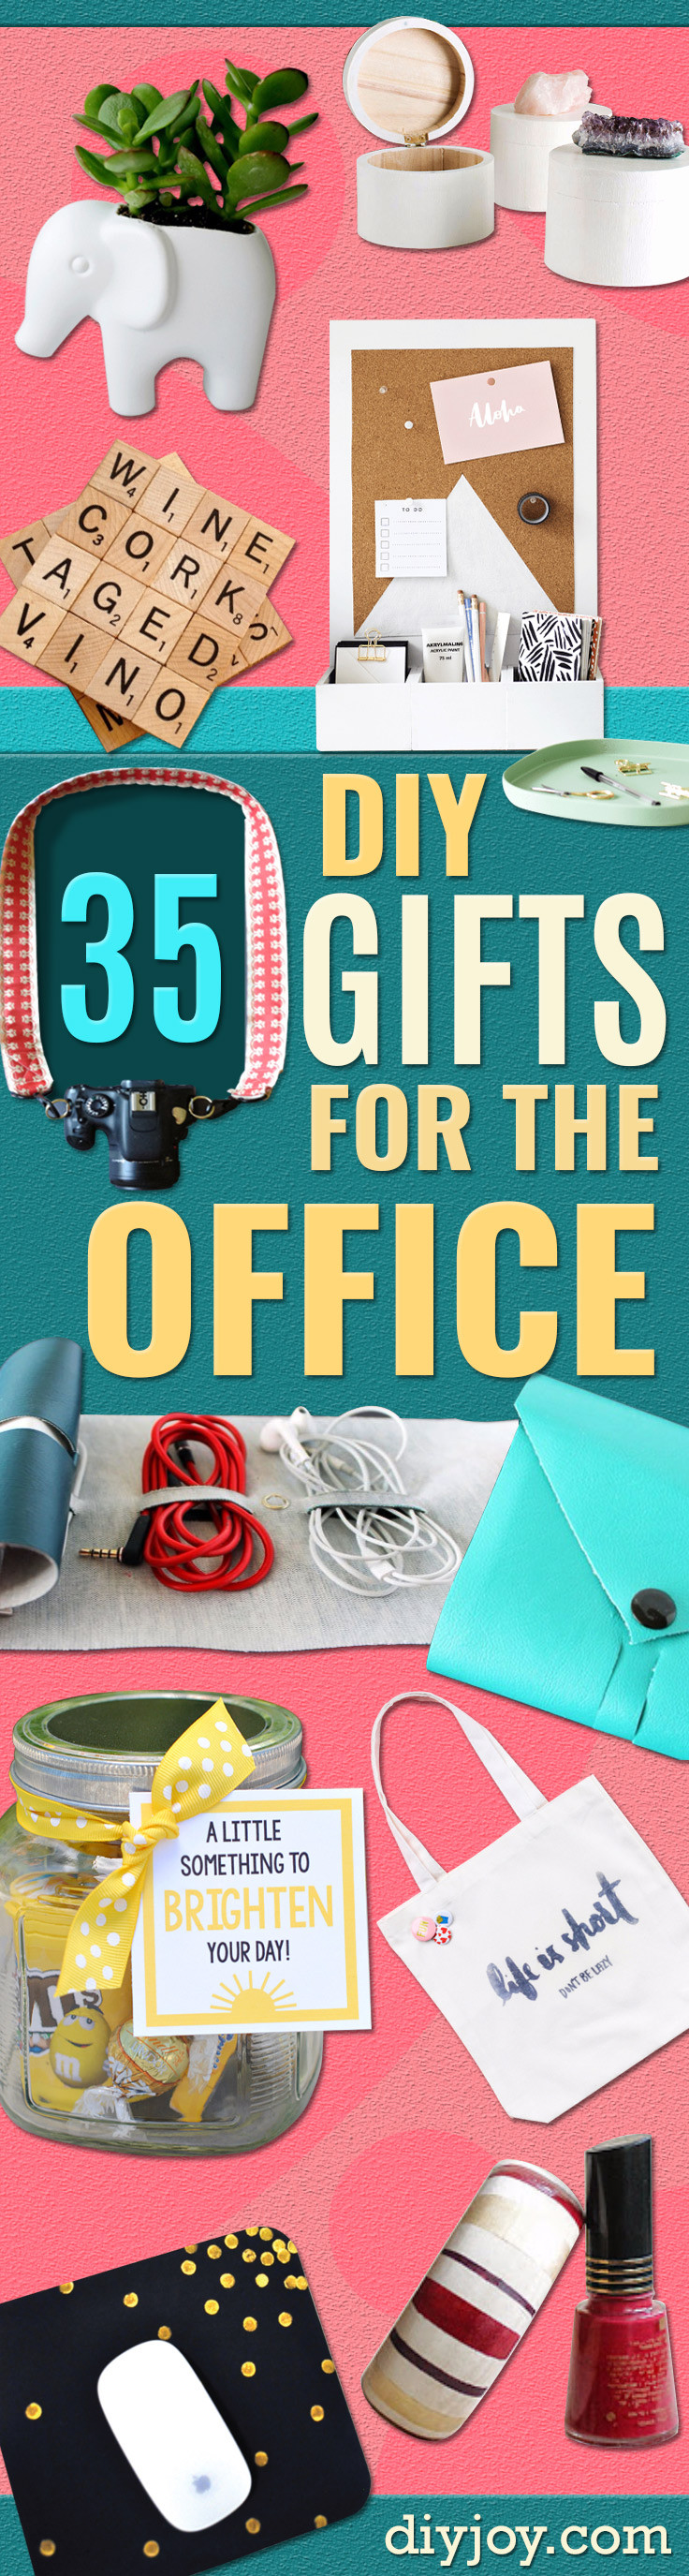 Office Holiday Gift Ideas  35 Cheap and Easy Gifts for The fice